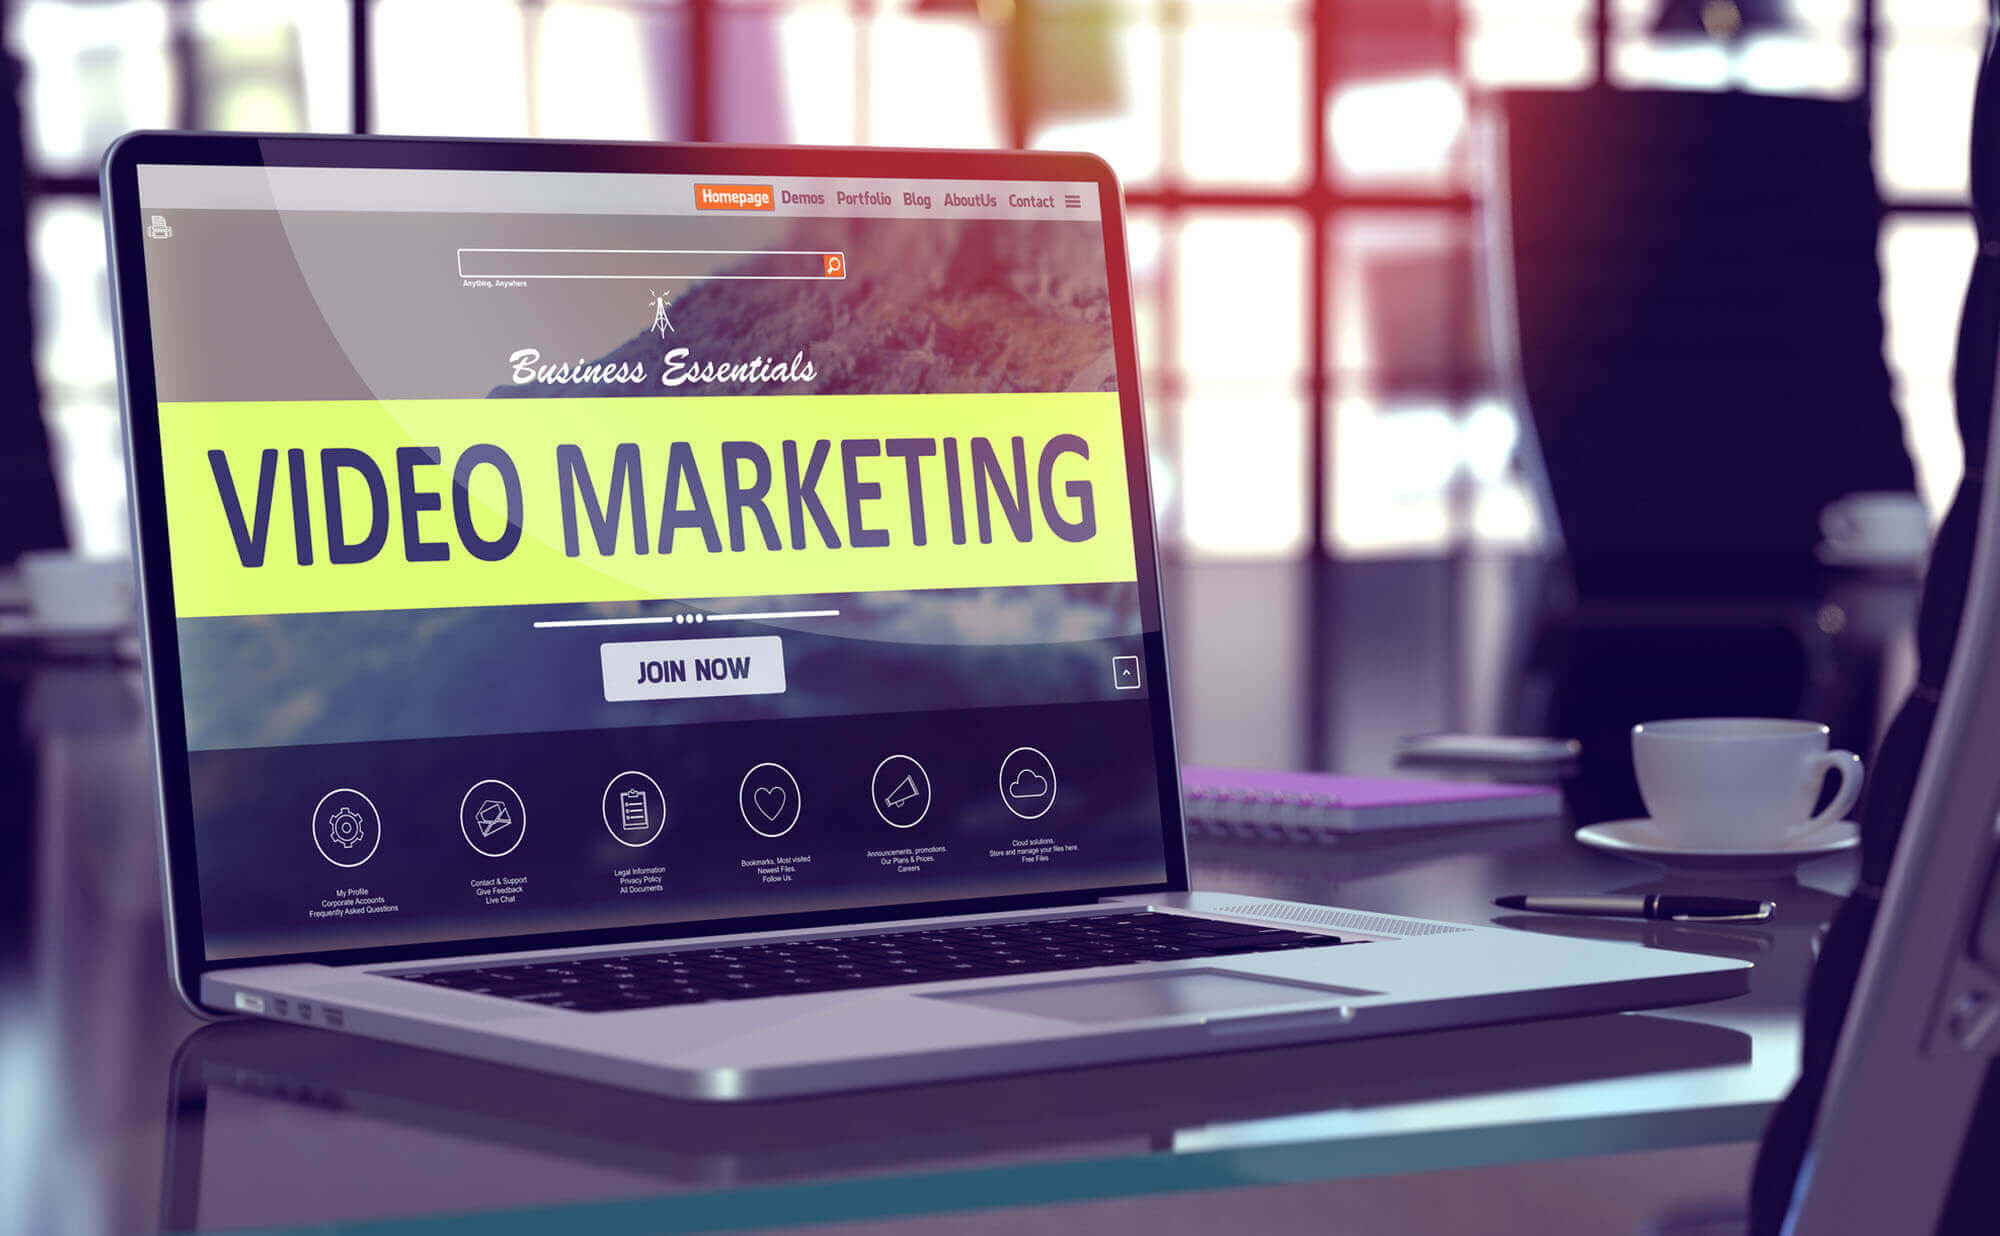 10 Powerful Benefits of Video Marketing for Business